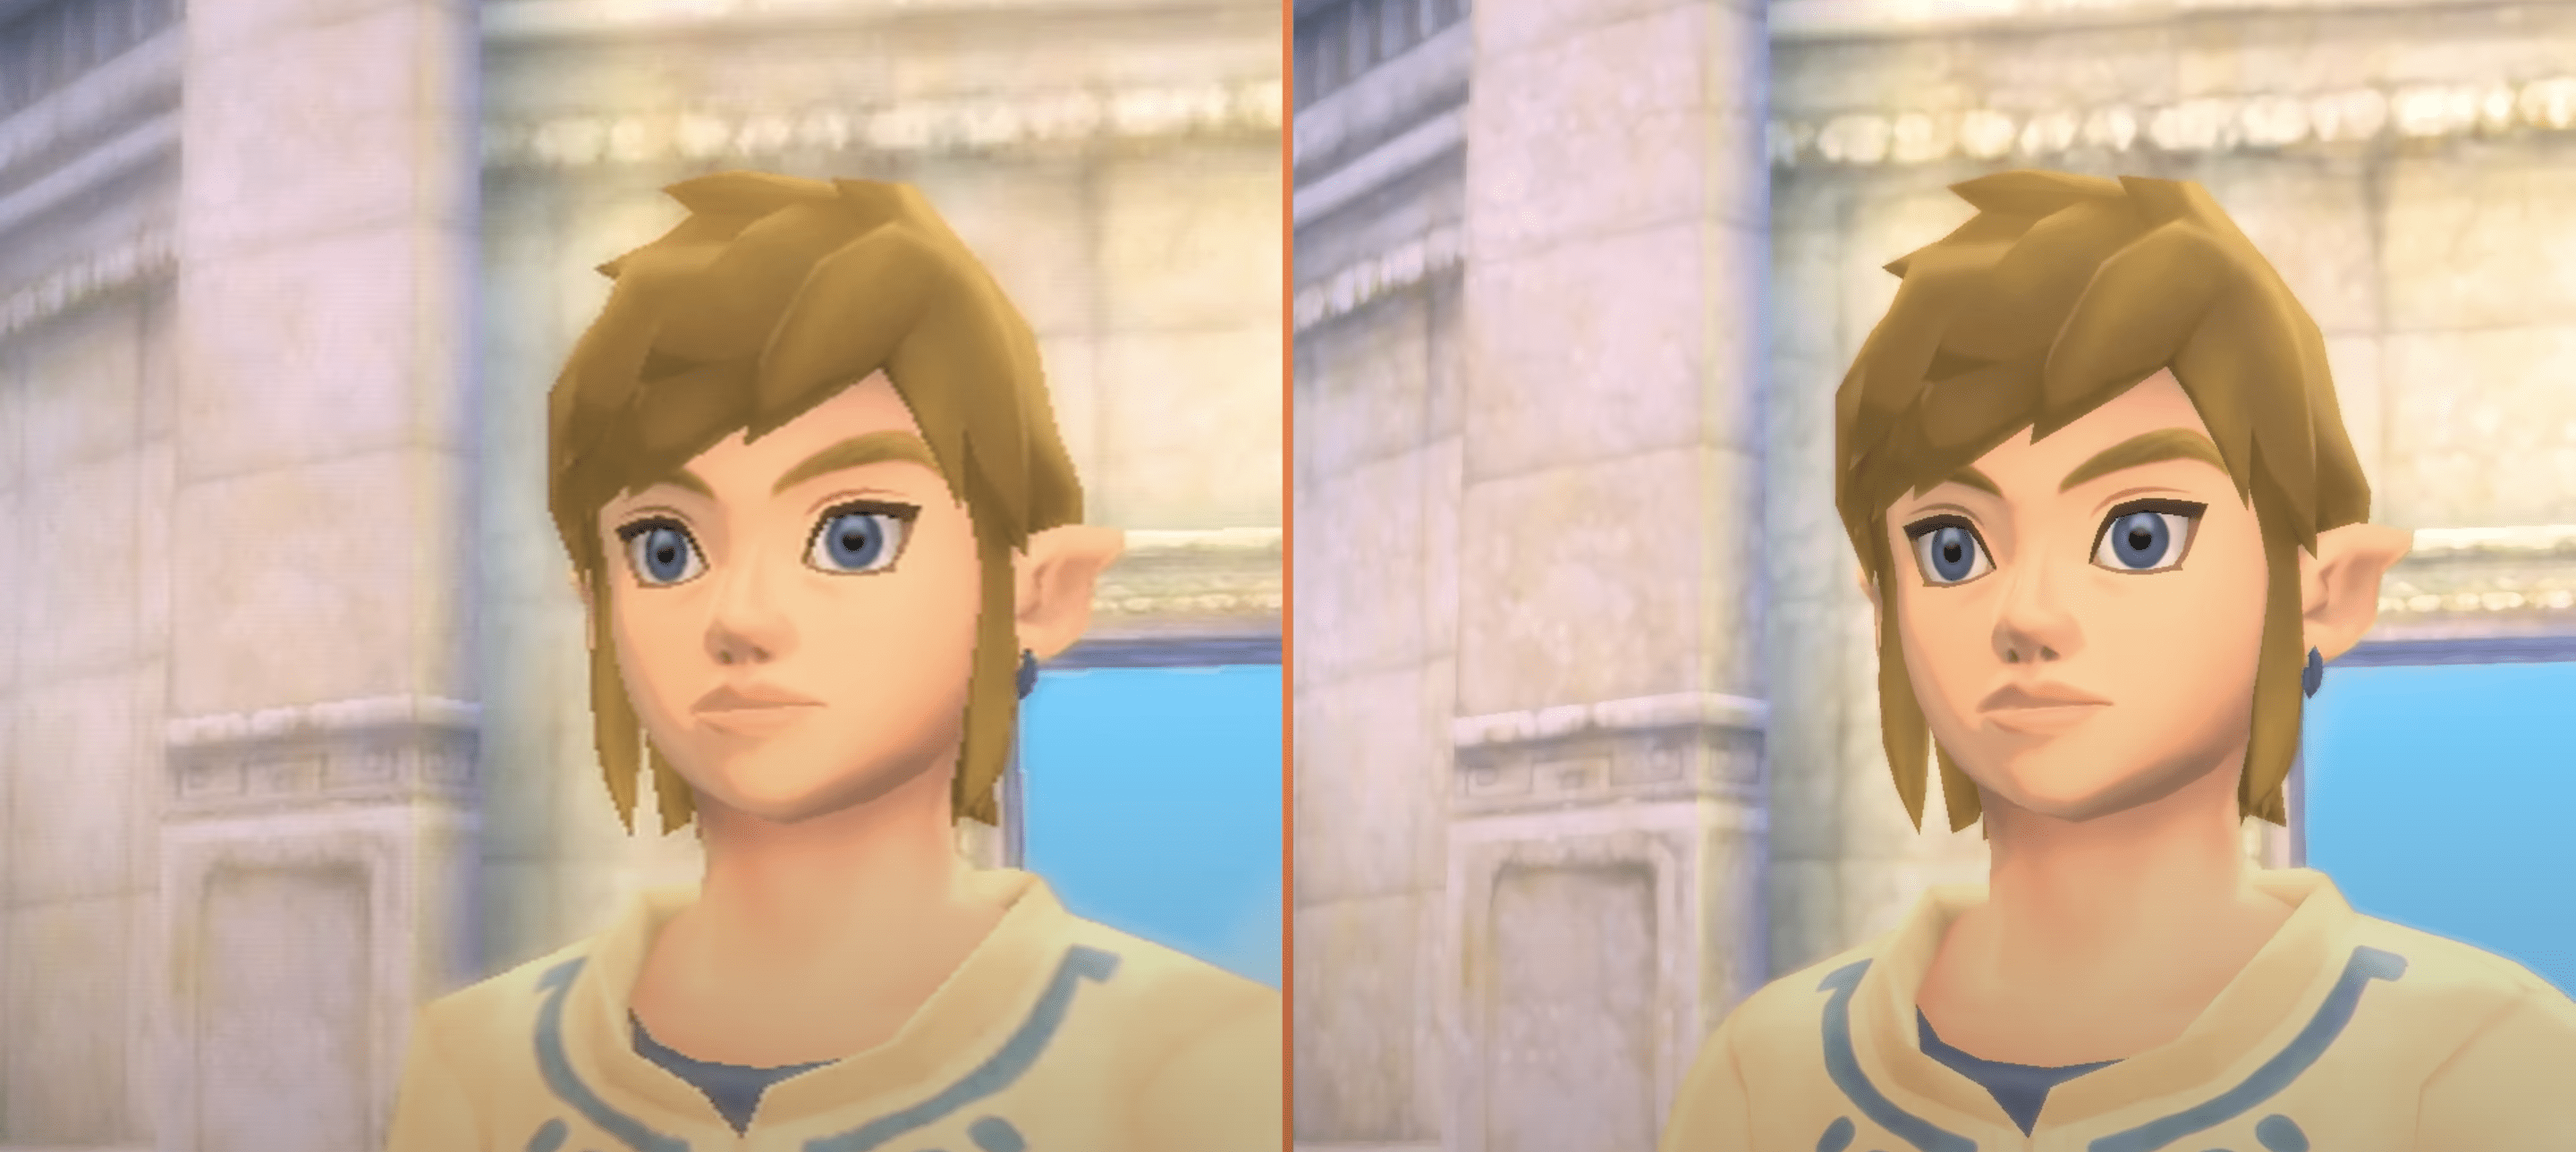 A comparison image of Link in Skyward Sword on Wii and Link in Skyward Sword HD on Switch